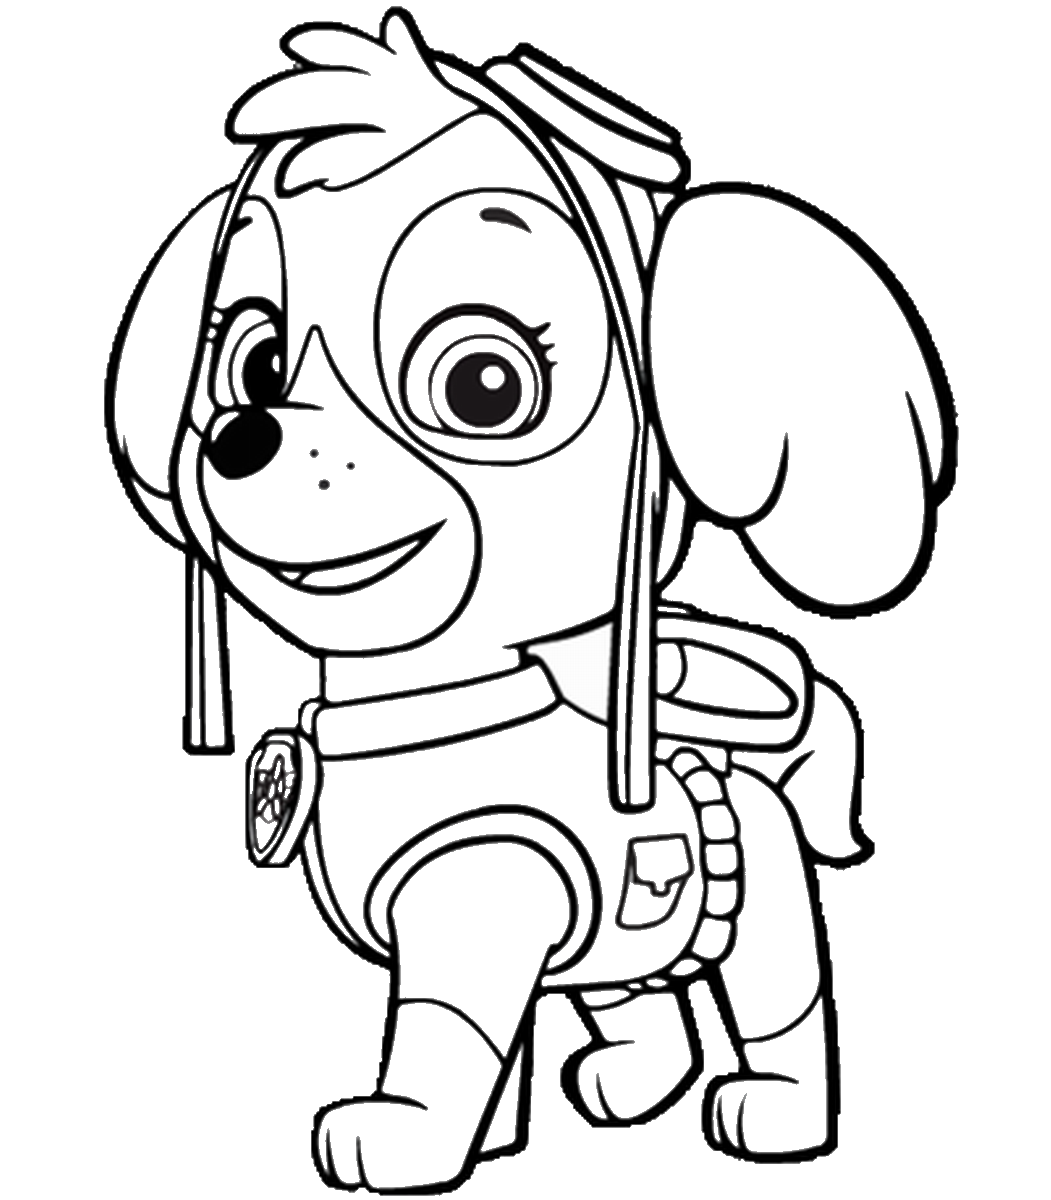 paw patrol coloring book 1000 images about baileys party ideas on pinterest paw book coloring patrol paw